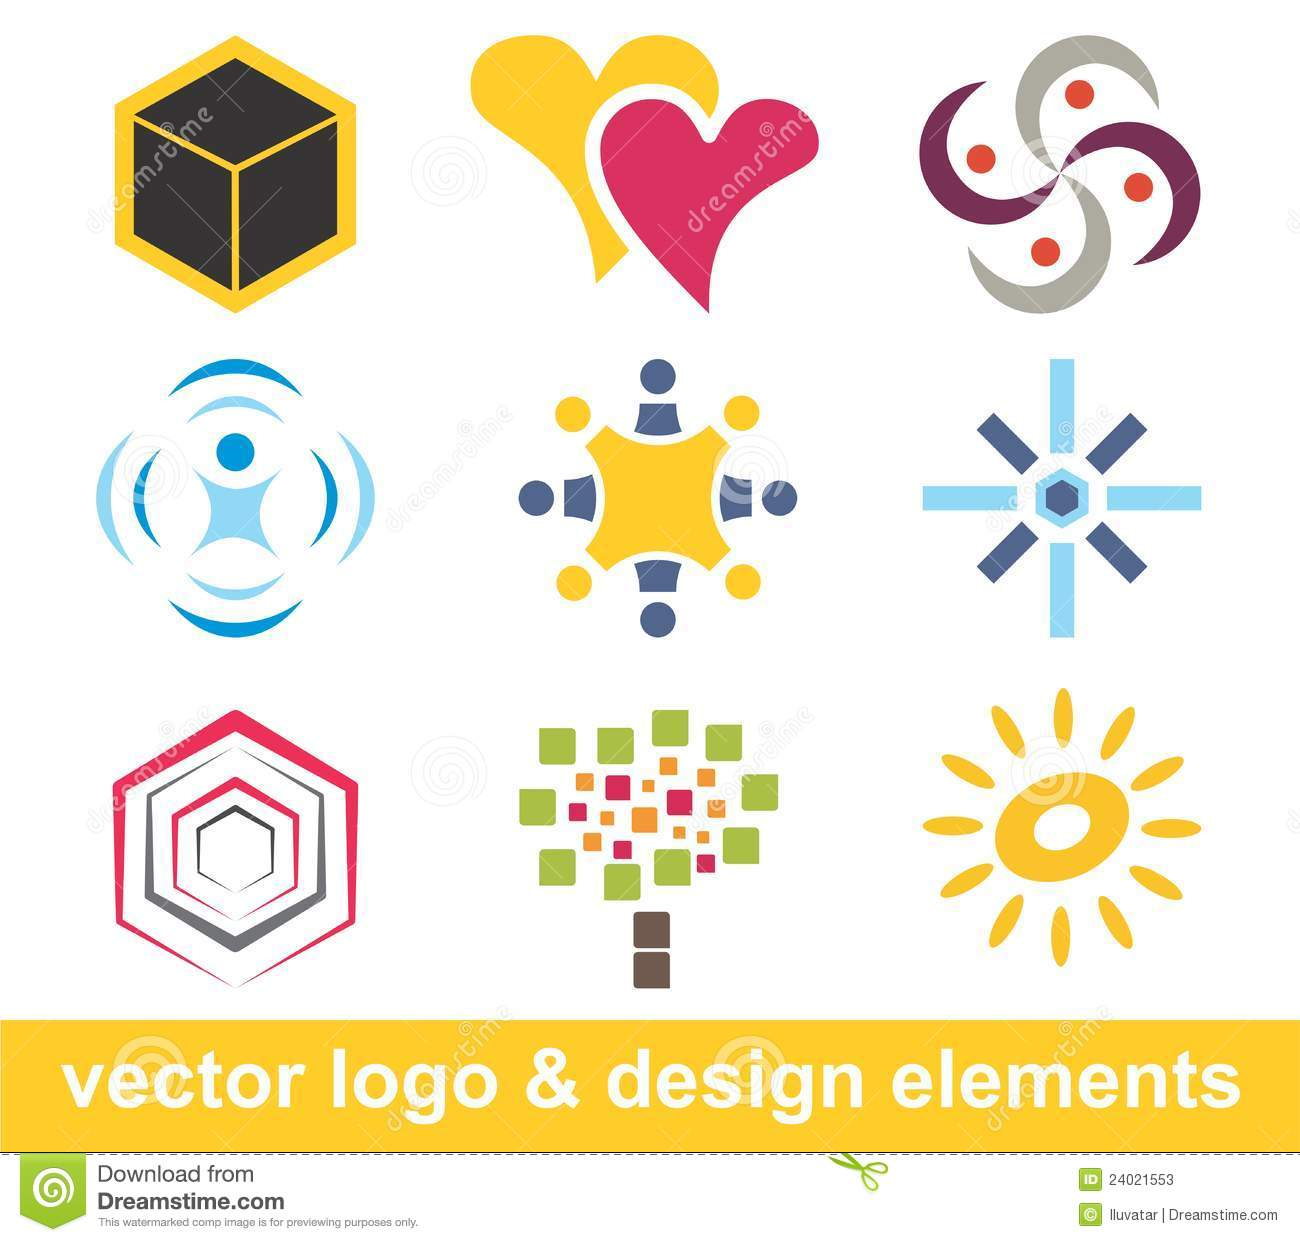 The Five Essential Elements of Effective Logo Design